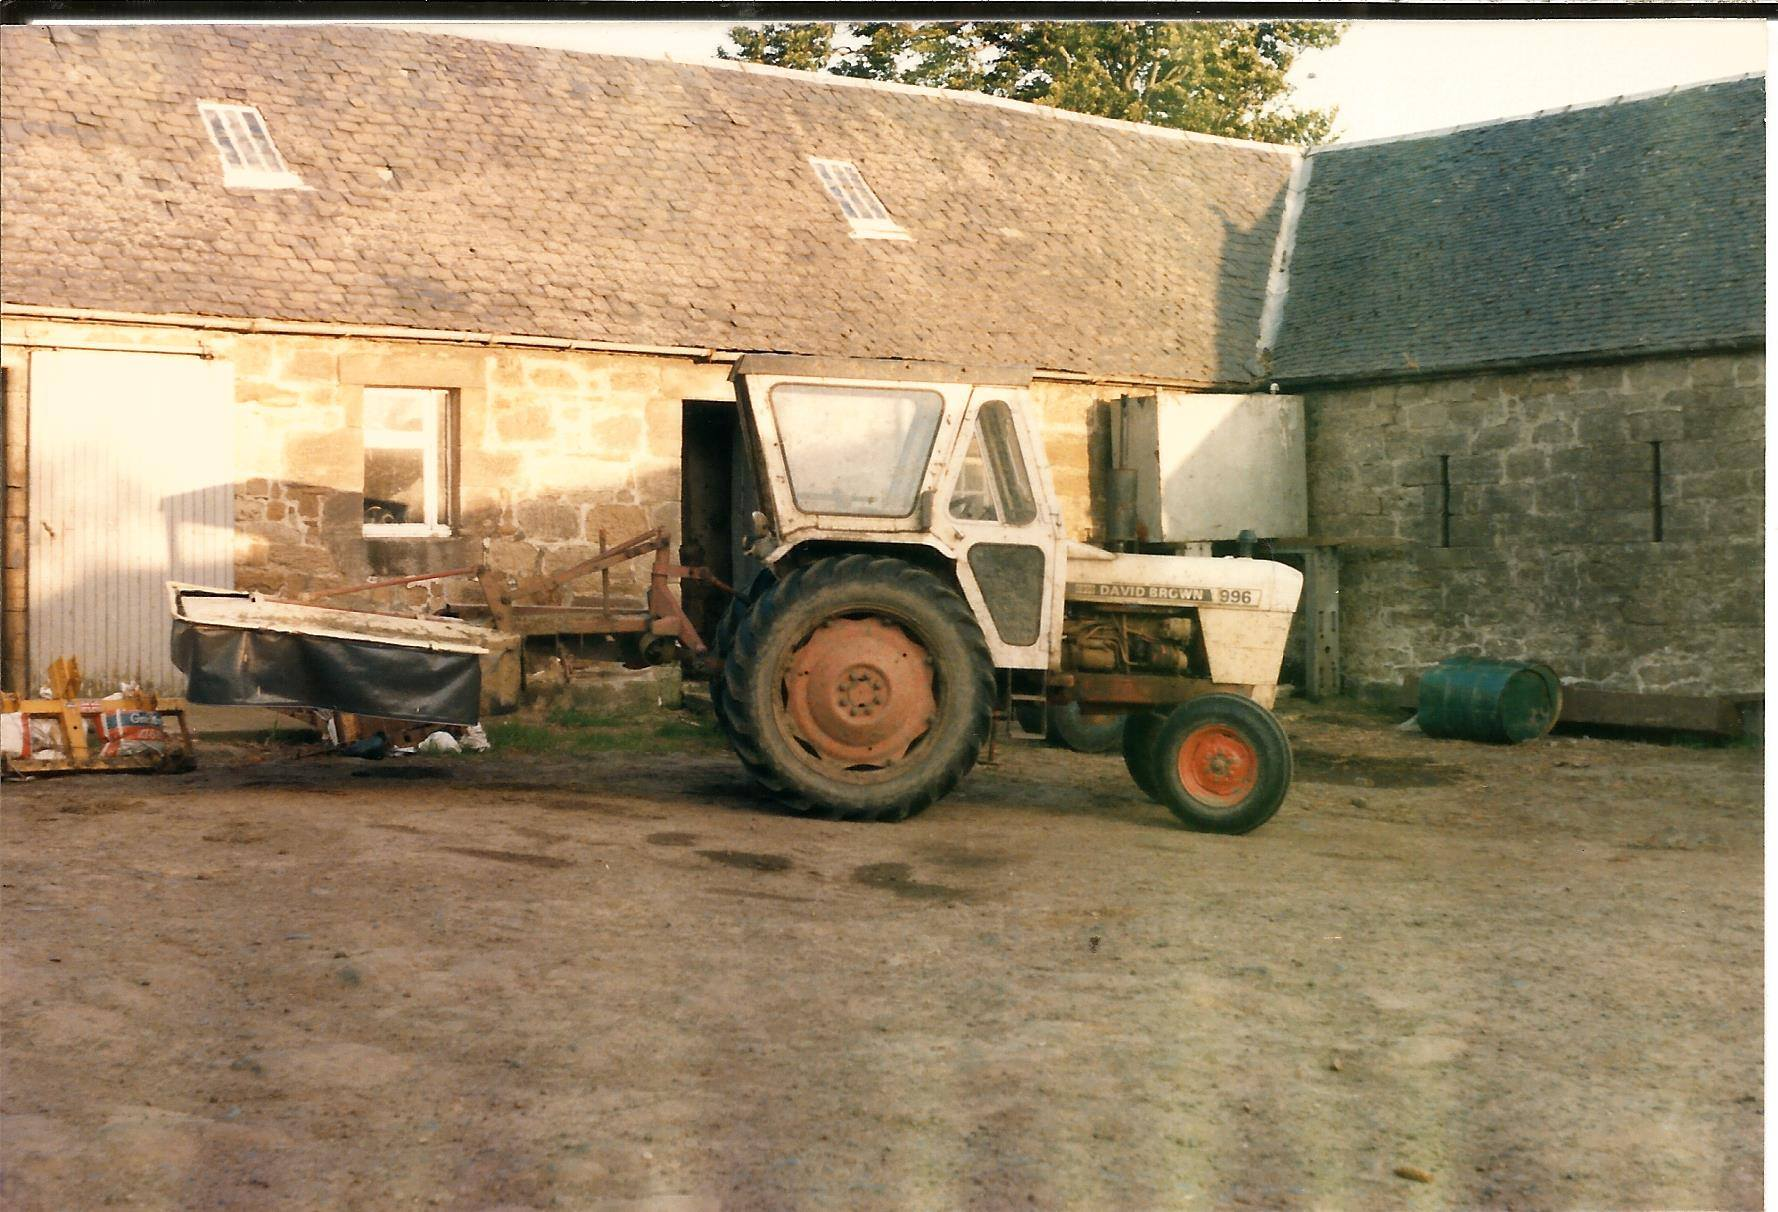 1980s Calderside Farm, from Jim Cochrane